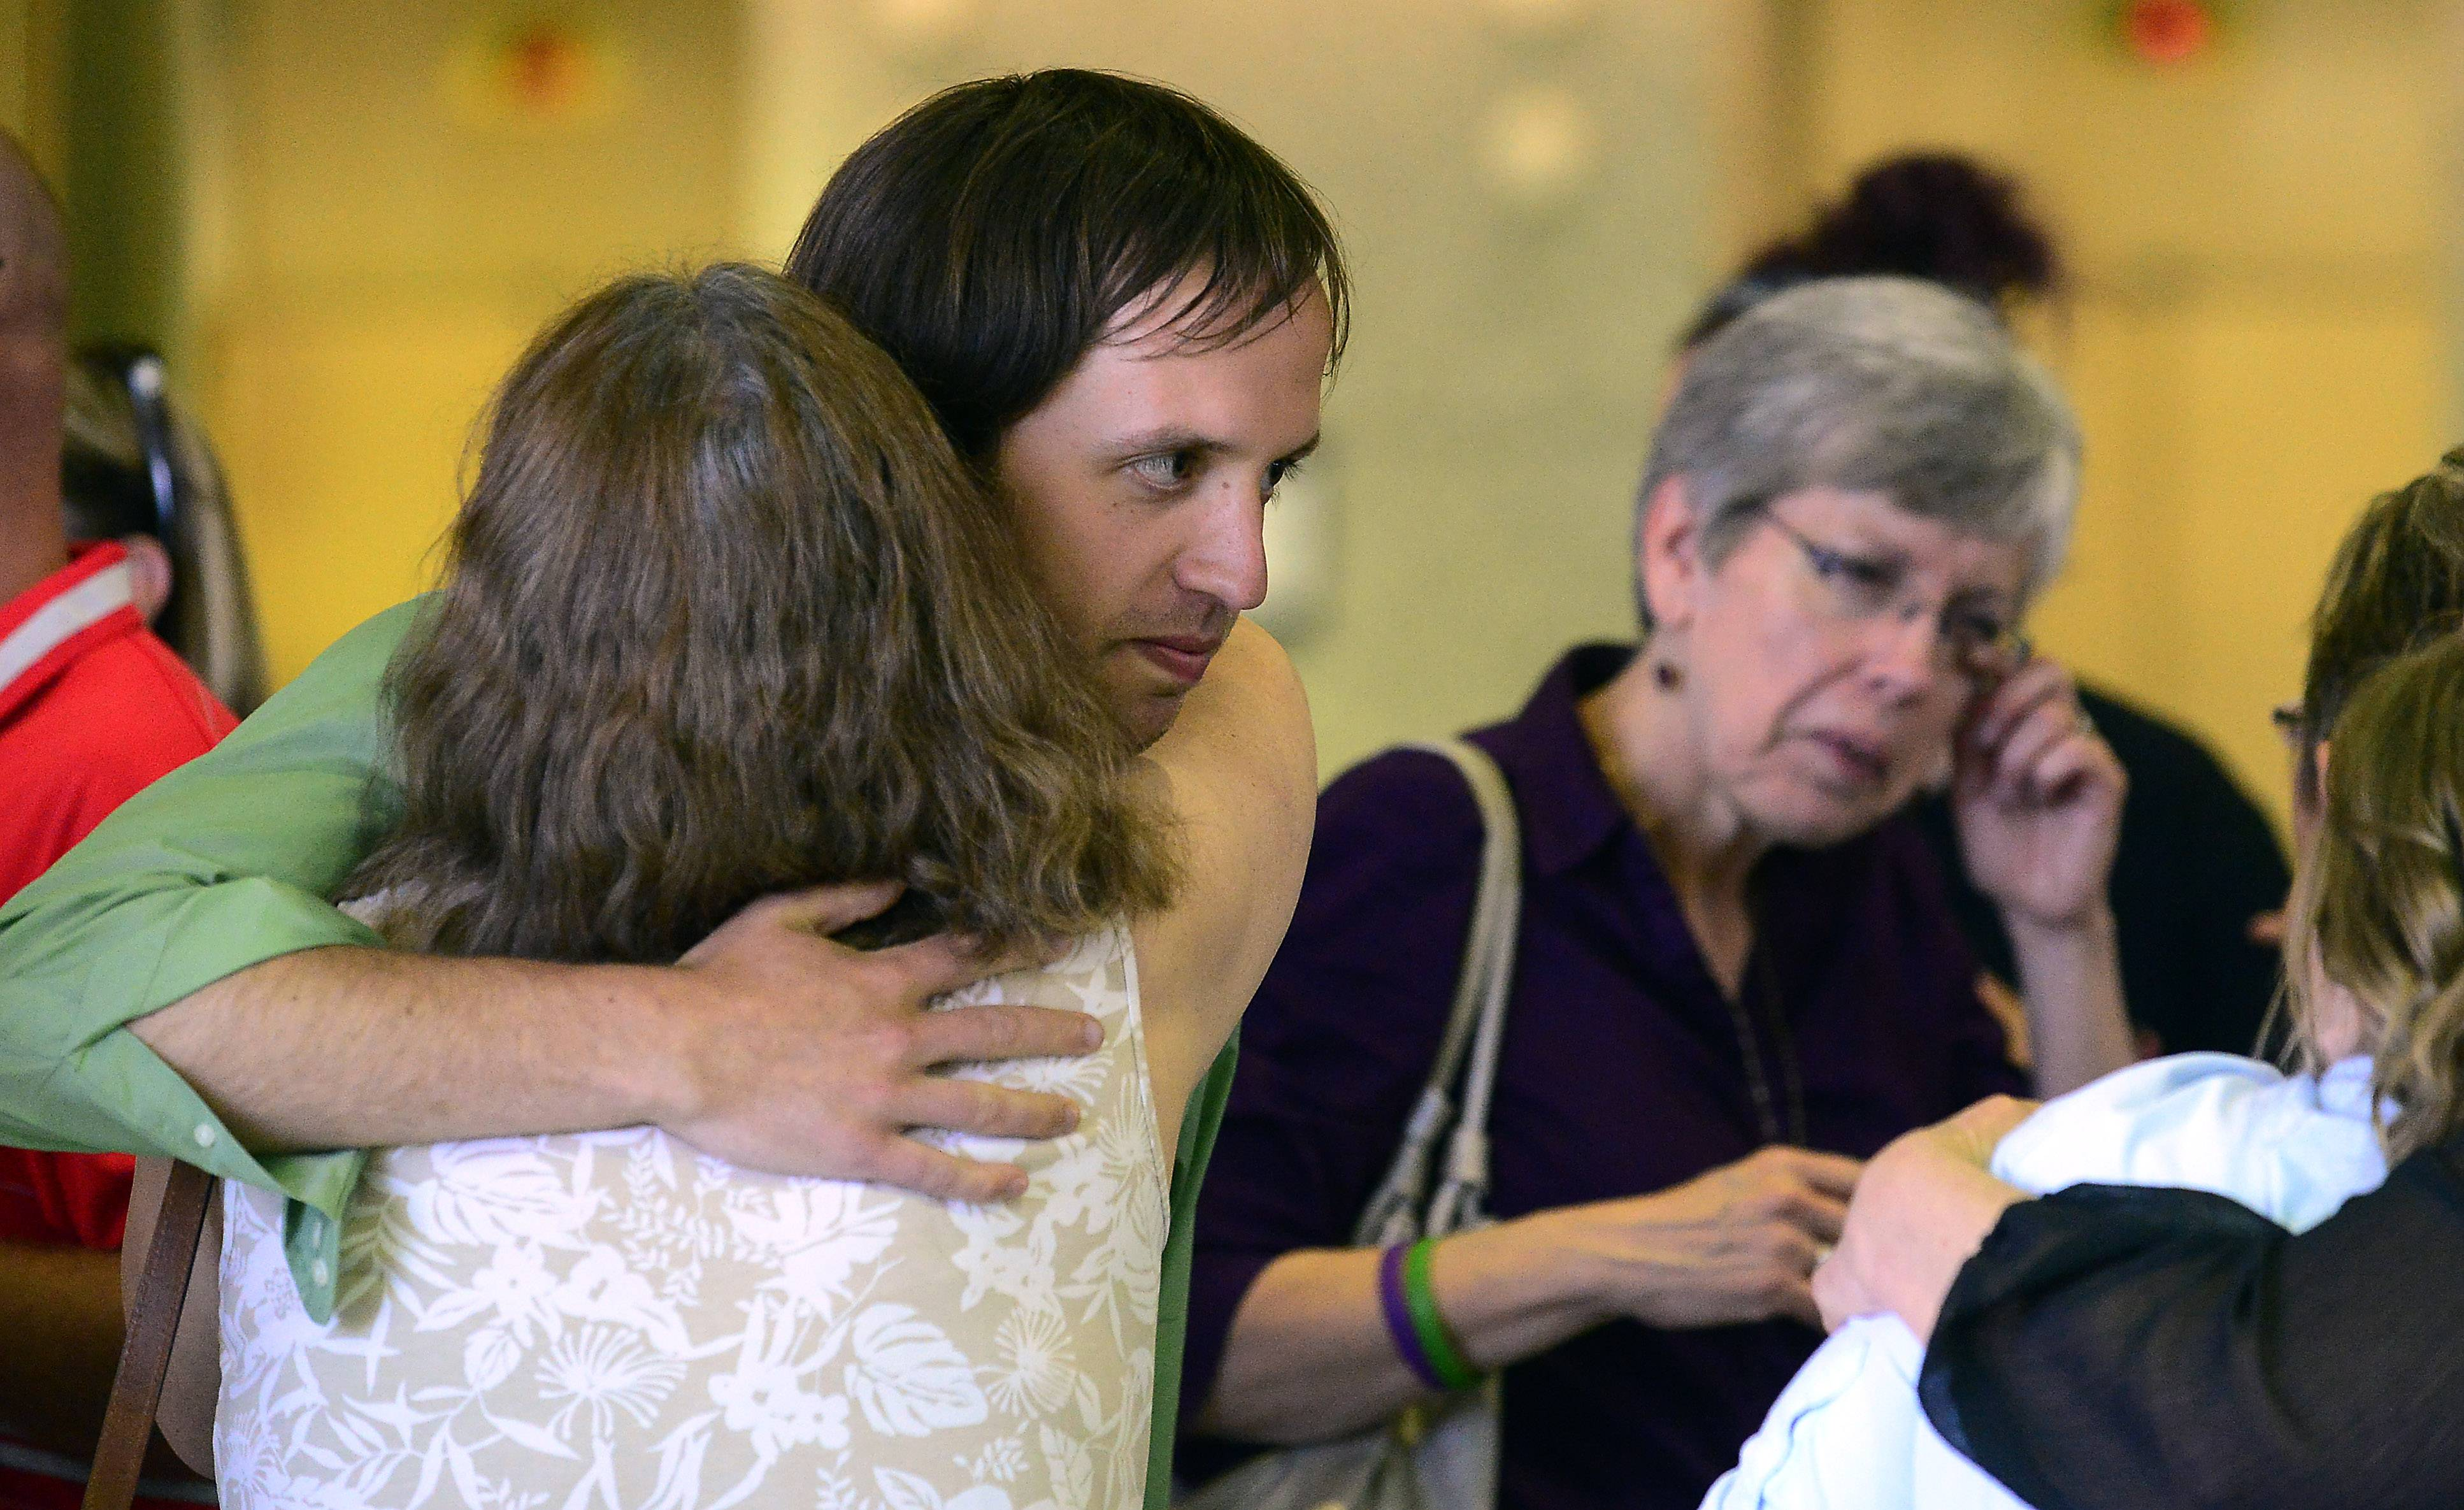 Jeff Engelhardt gets hugs from supporters as his mother, Shelly Engelhardt, wipes away tears after D'Andre Howard was convicted of stabbing to death three members of their family in their Hoffman Estates home five years ago.